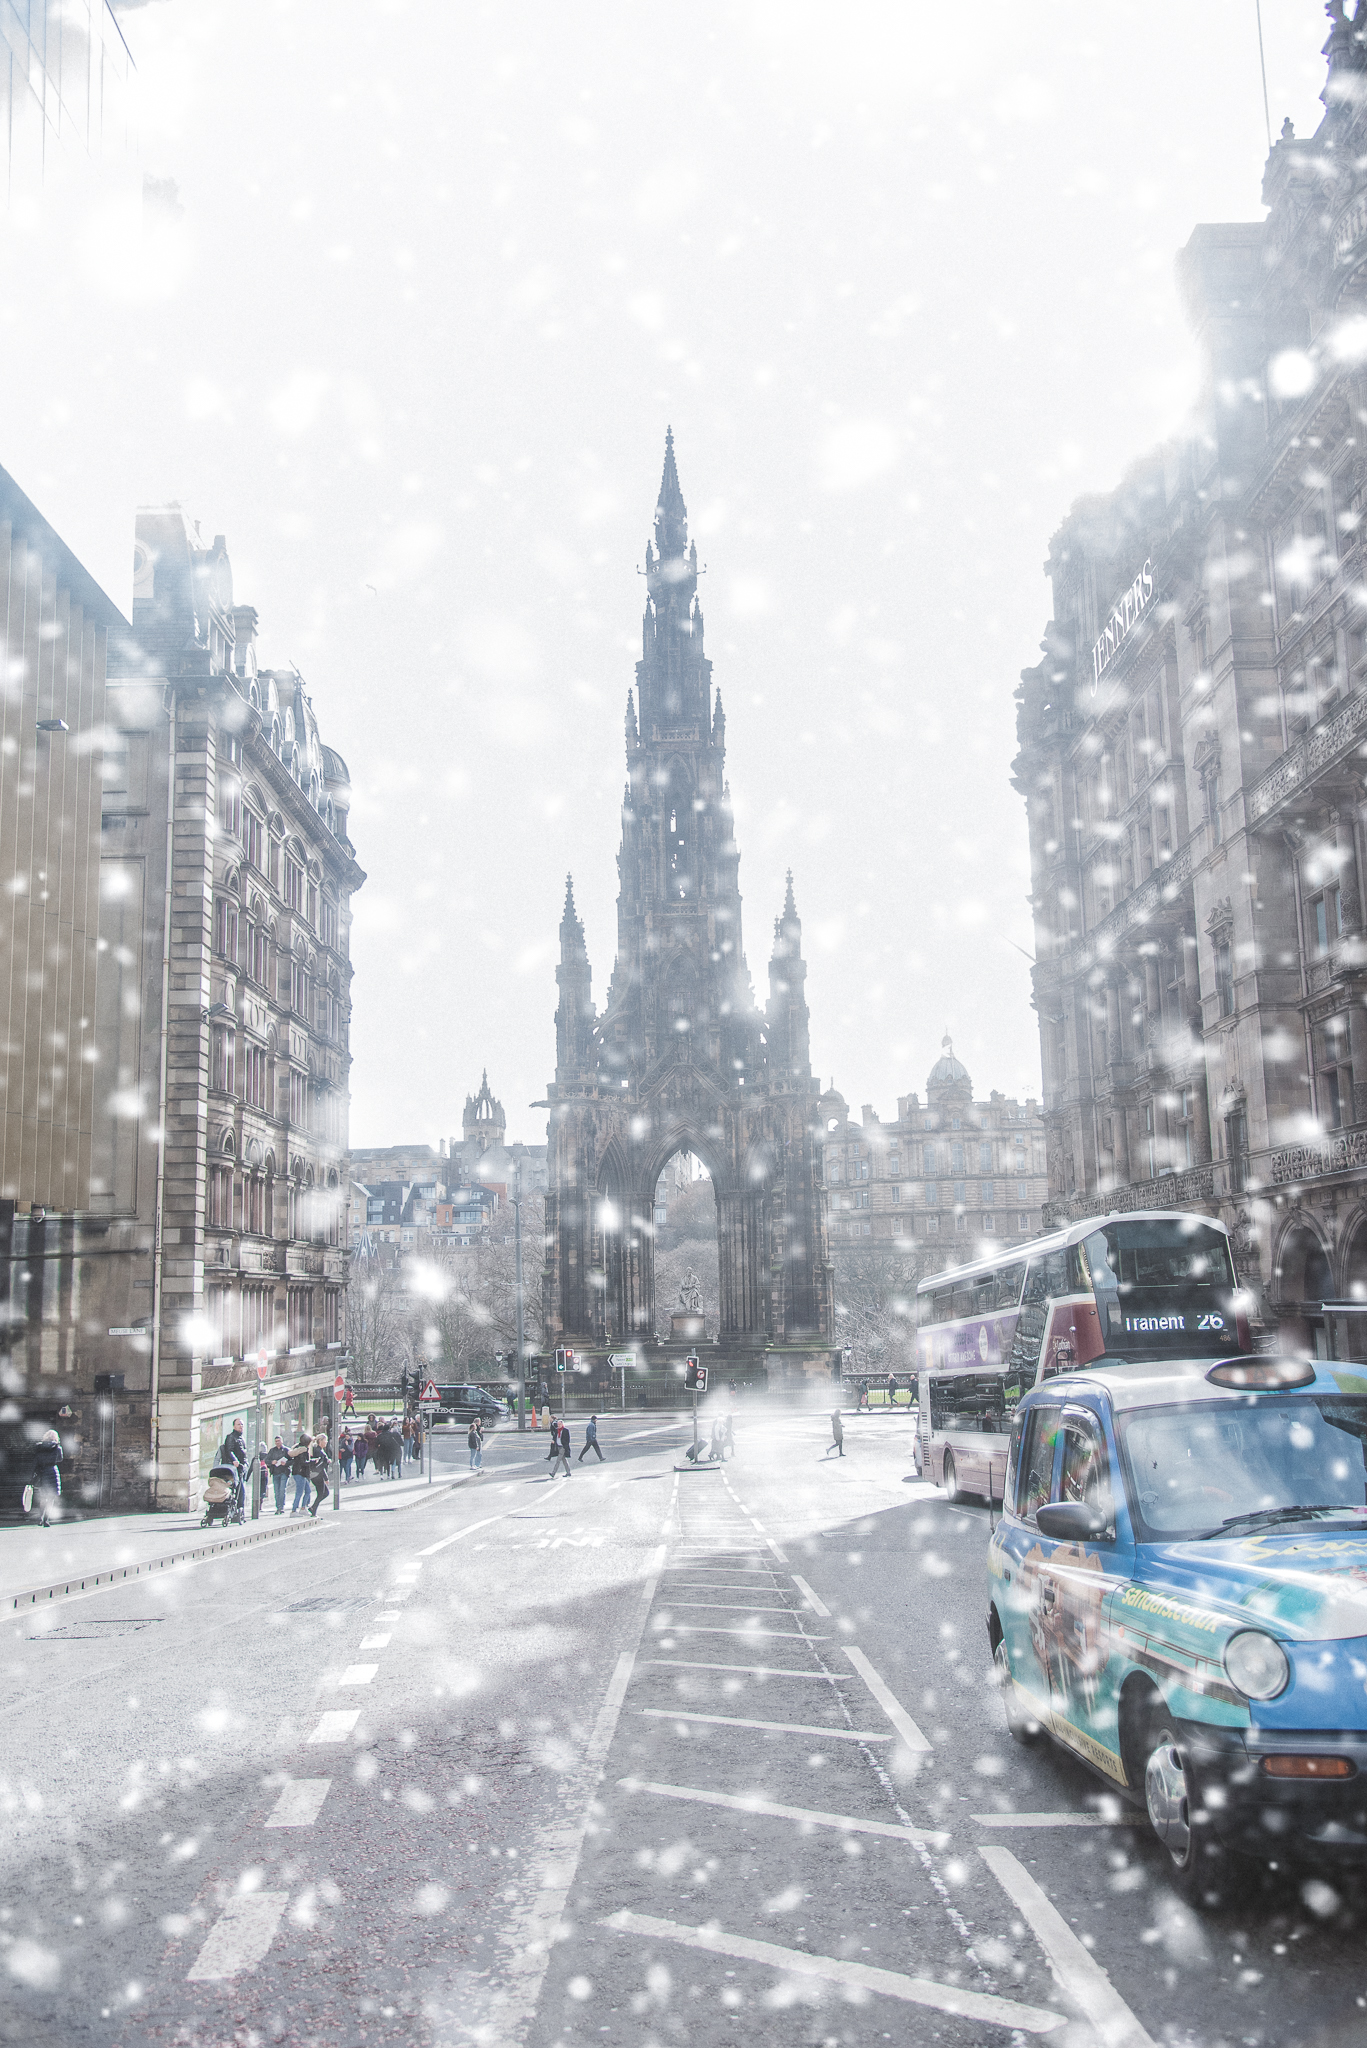 sir walter scott, monument, edinburgh, scotland, snow, architecture